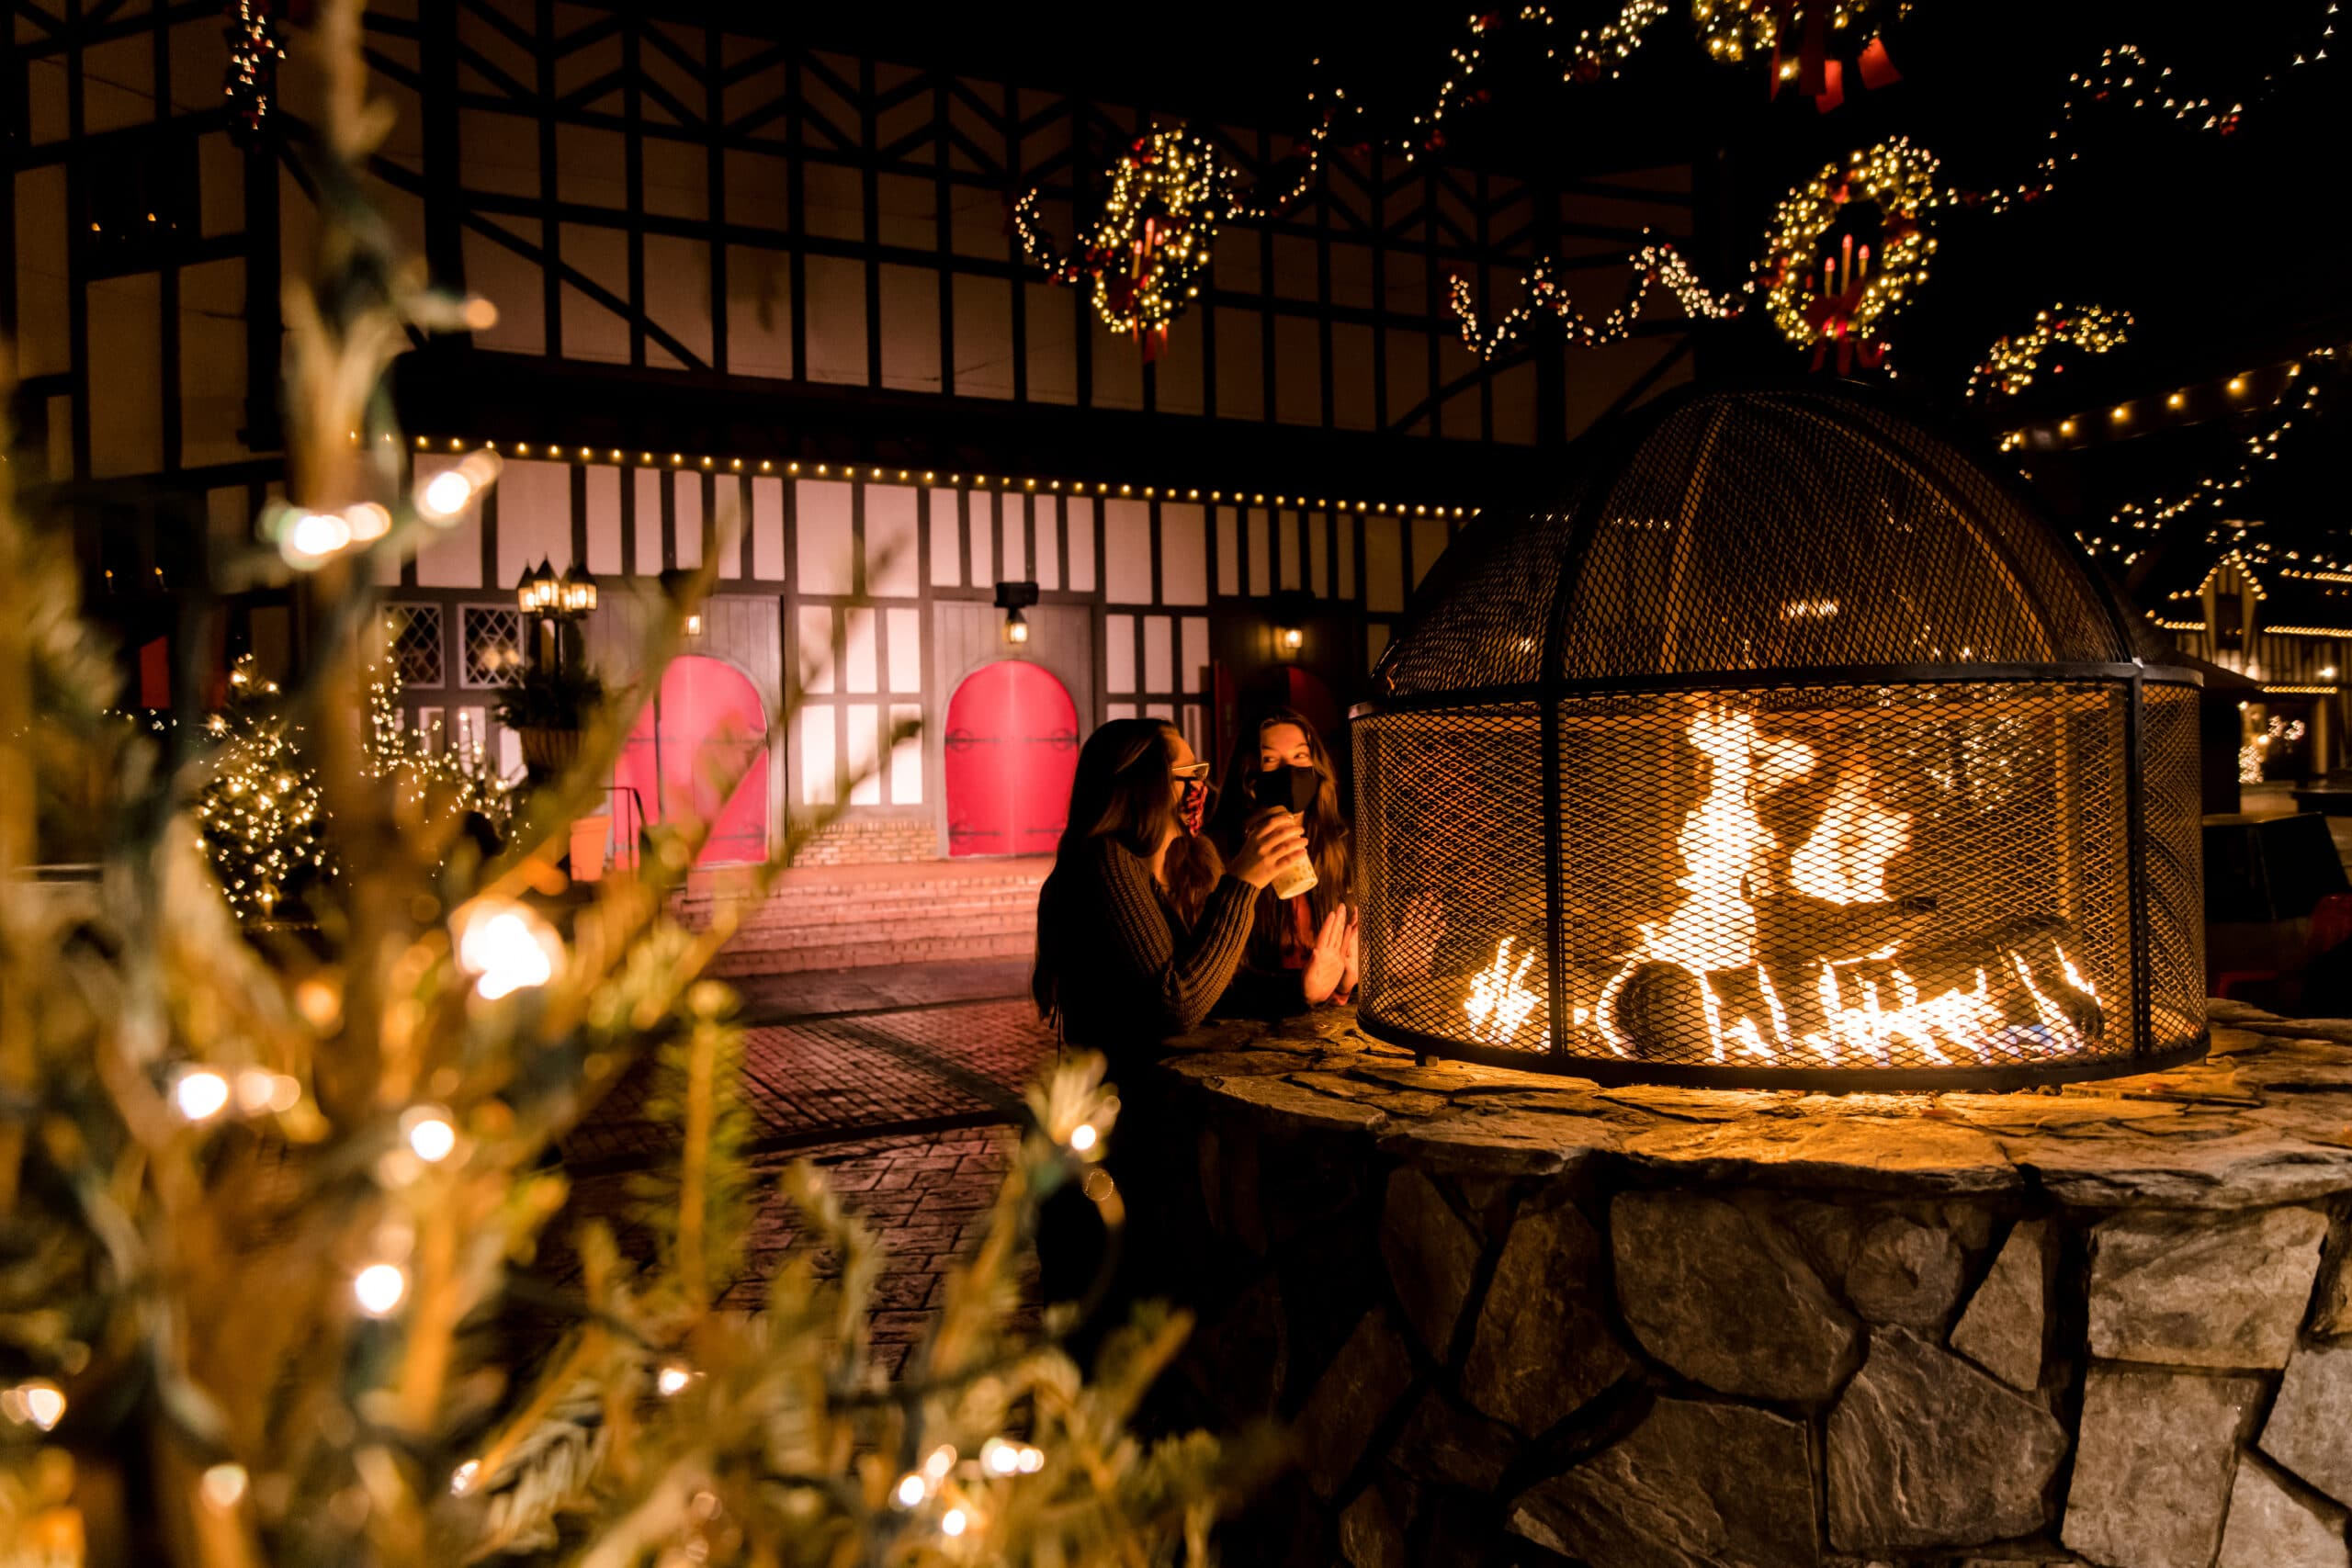 England firepit. Enjoy the new Busch Gardens Williamsburg 2021 special events that offer socially distanced fun and entertainment all year long. Busch Gardens will be the place for all things fun, new, and safe in 2021.